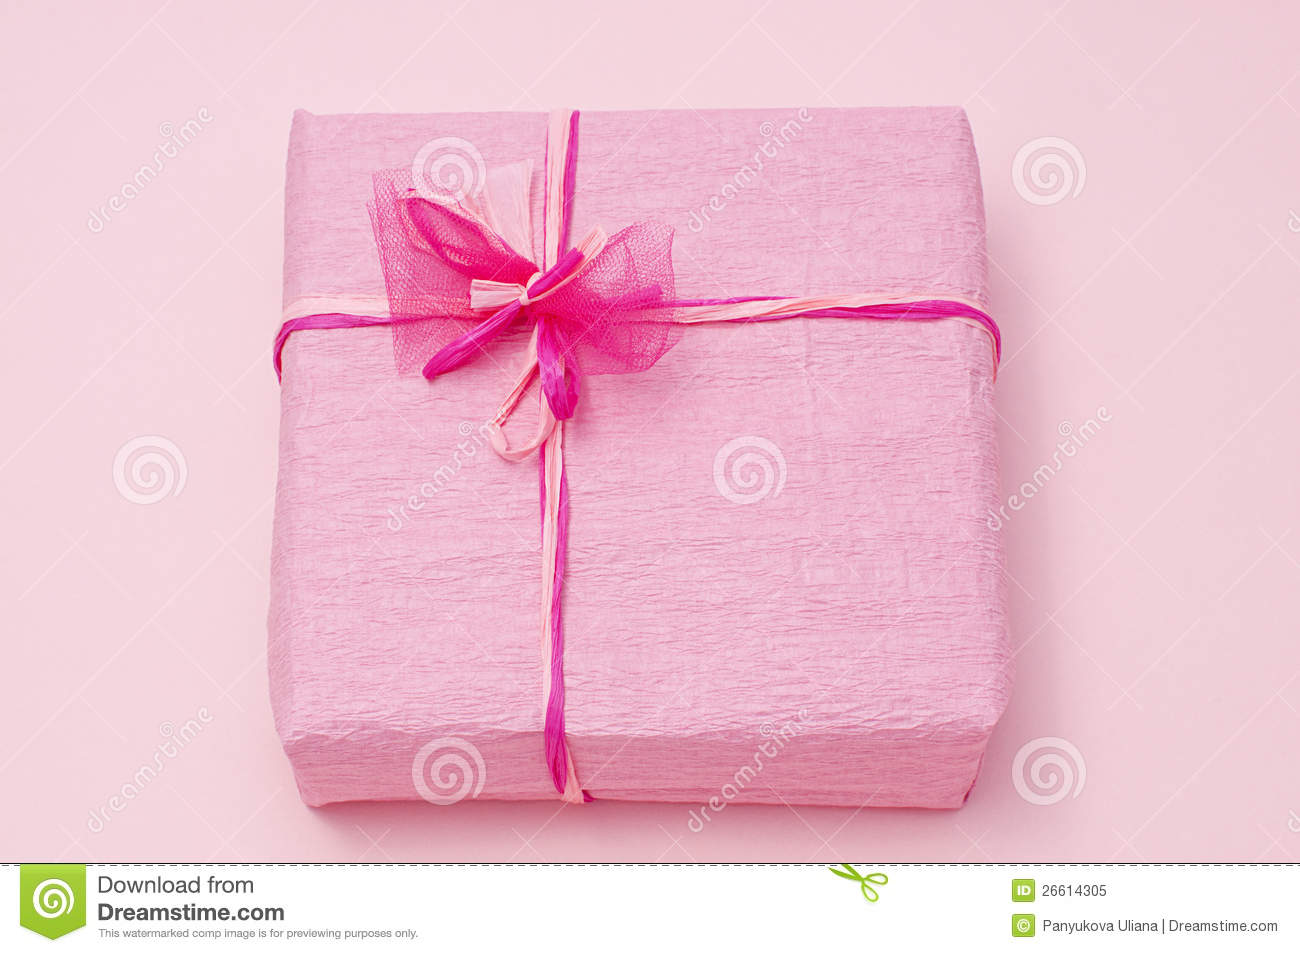 Pink color gift box stock image image of birthday female 26614305 pink color gift box birthday female negle Image collections